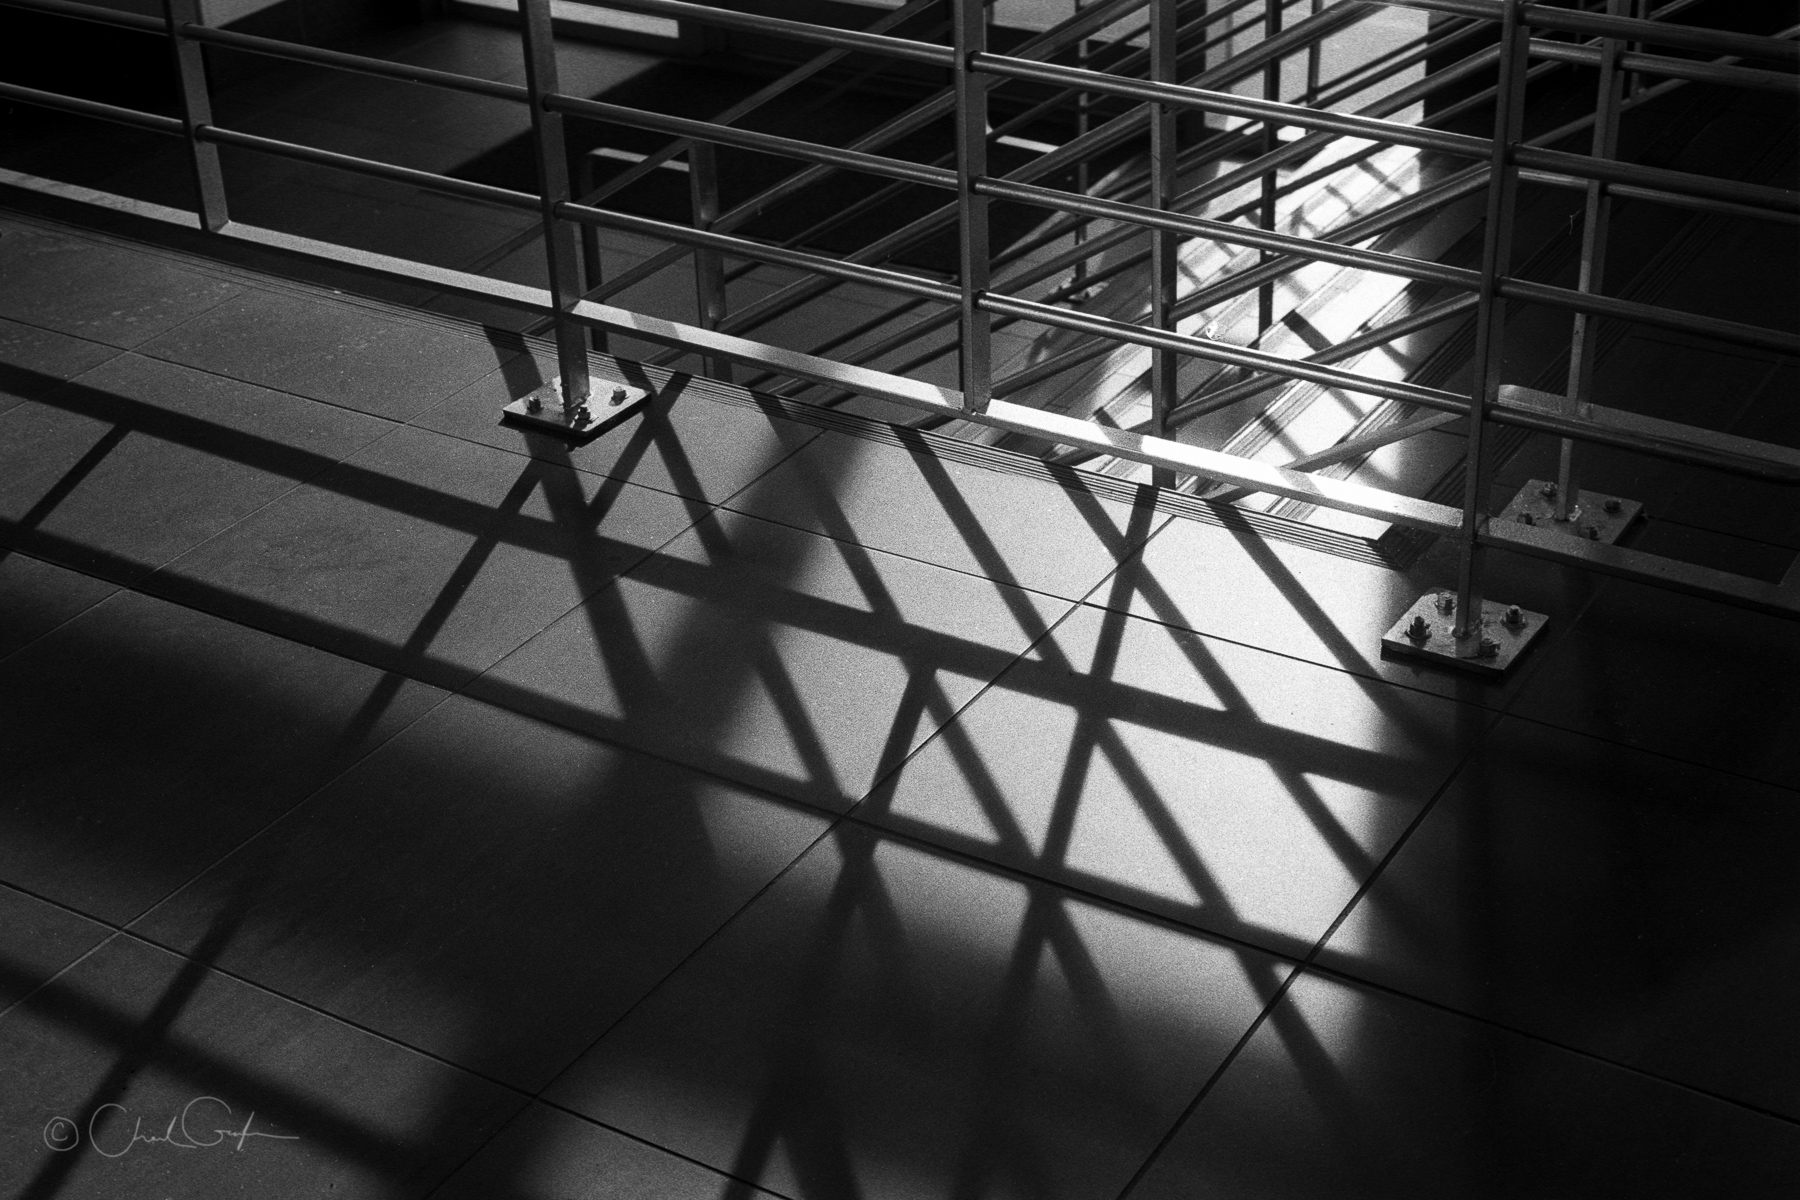 Sunlight Casting Shadows on Station Stairs by Chad Gayle (Image)